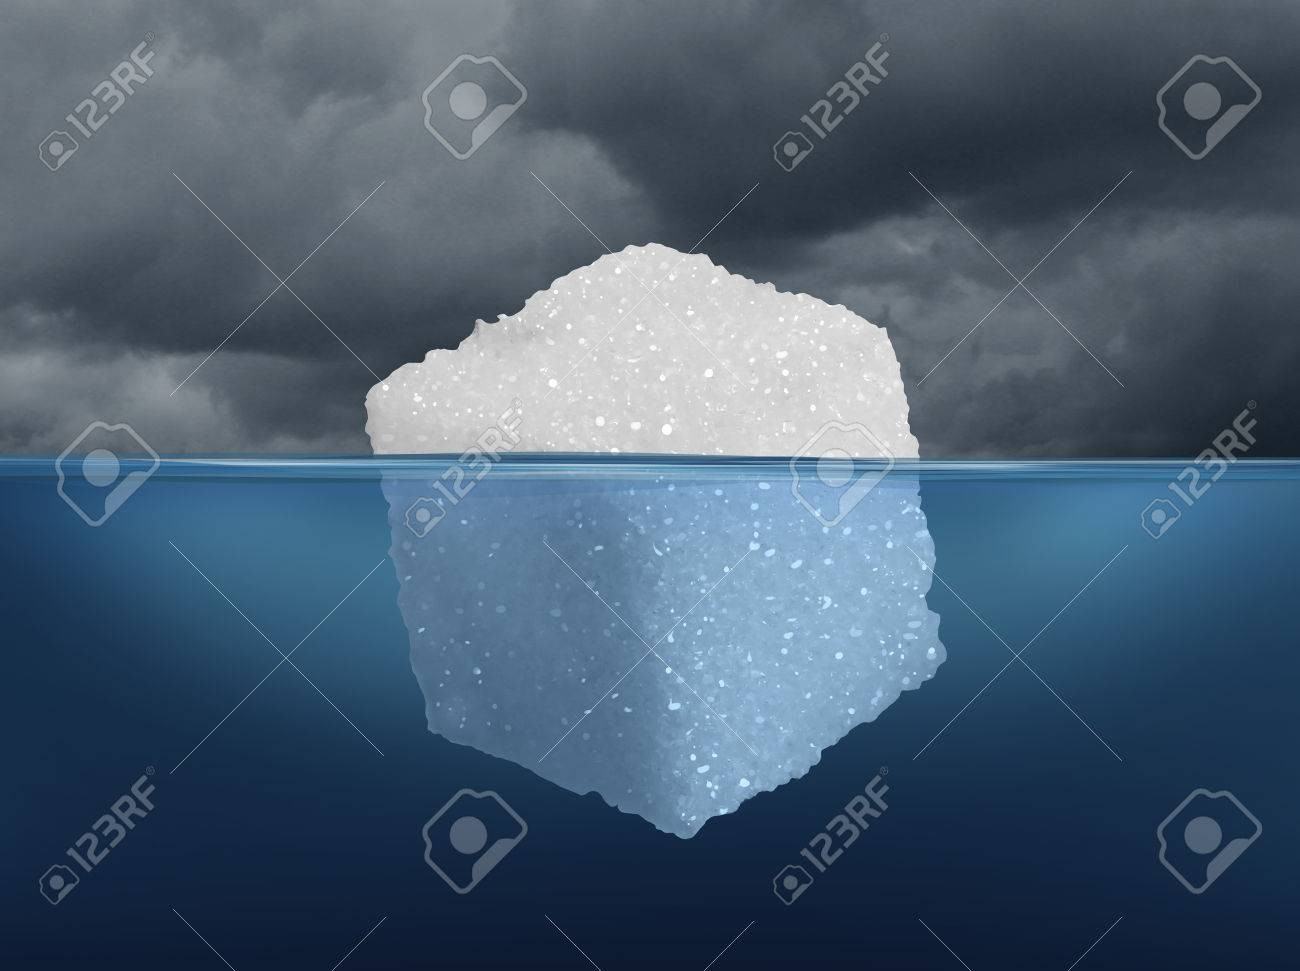 Sugar risk and hidden dietary medical danger concept as an iceberg made from a sugar cube as risky sweet granulated refined sweetener as a metaphor for the underlying hazard of diabetes or unhealthy diet habit in a 3D illustration style. Stock Illustration - 63825907